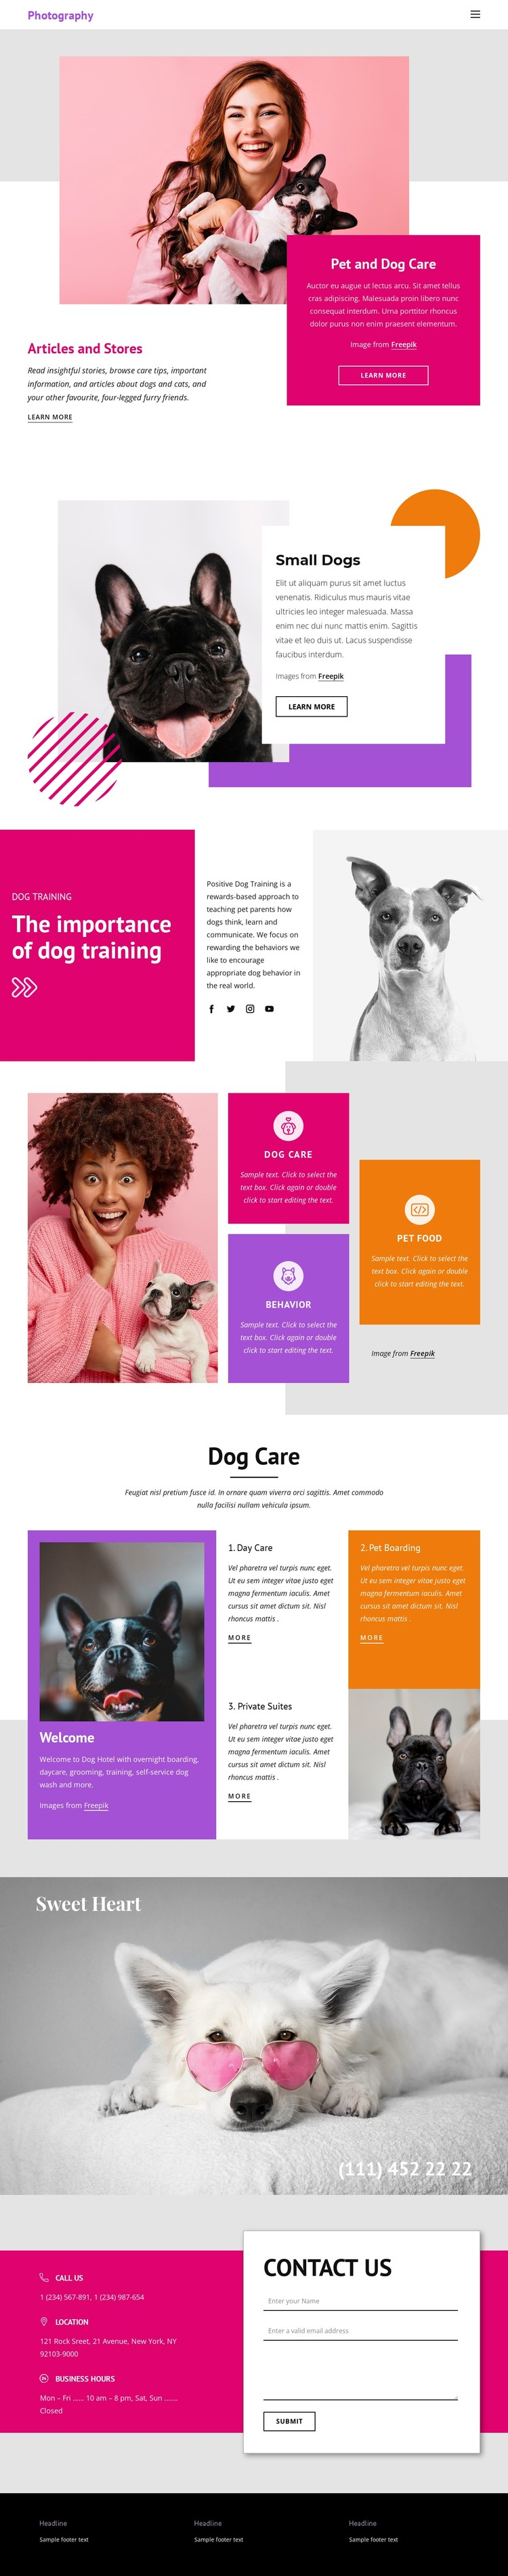 Pets Stories Static Site Generator